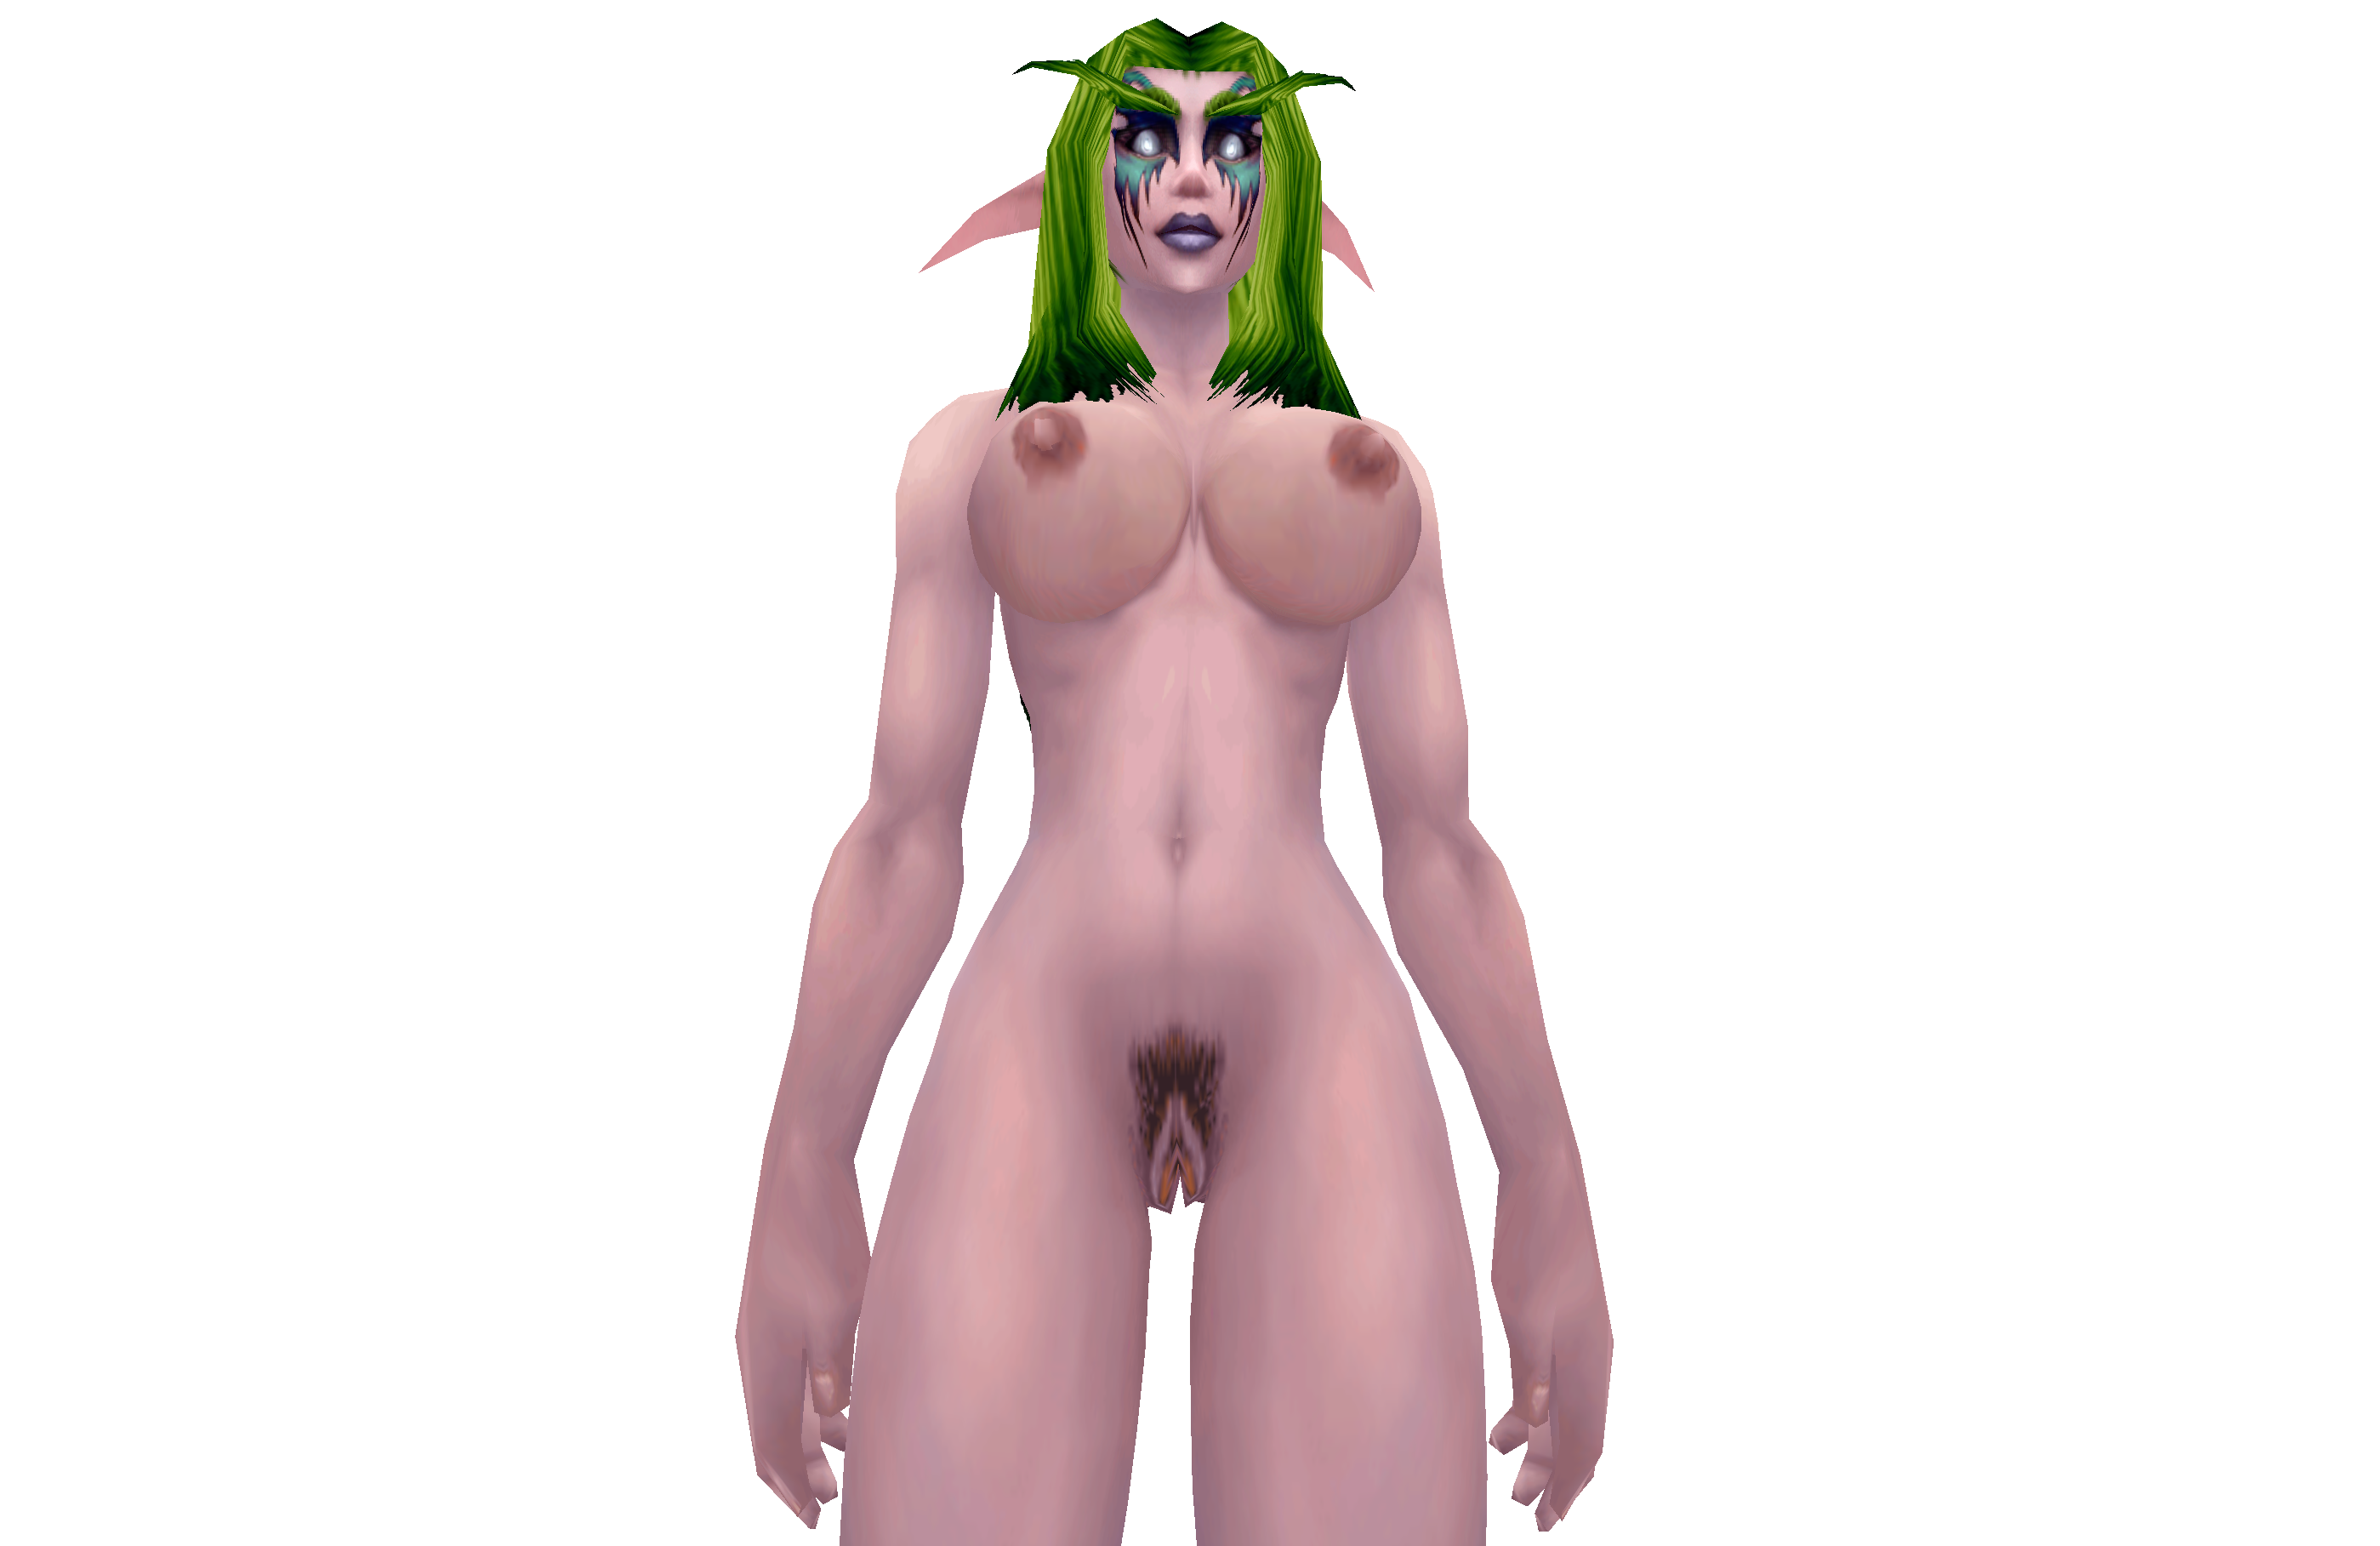 World of warcraft nude clothes mod sexy galleries